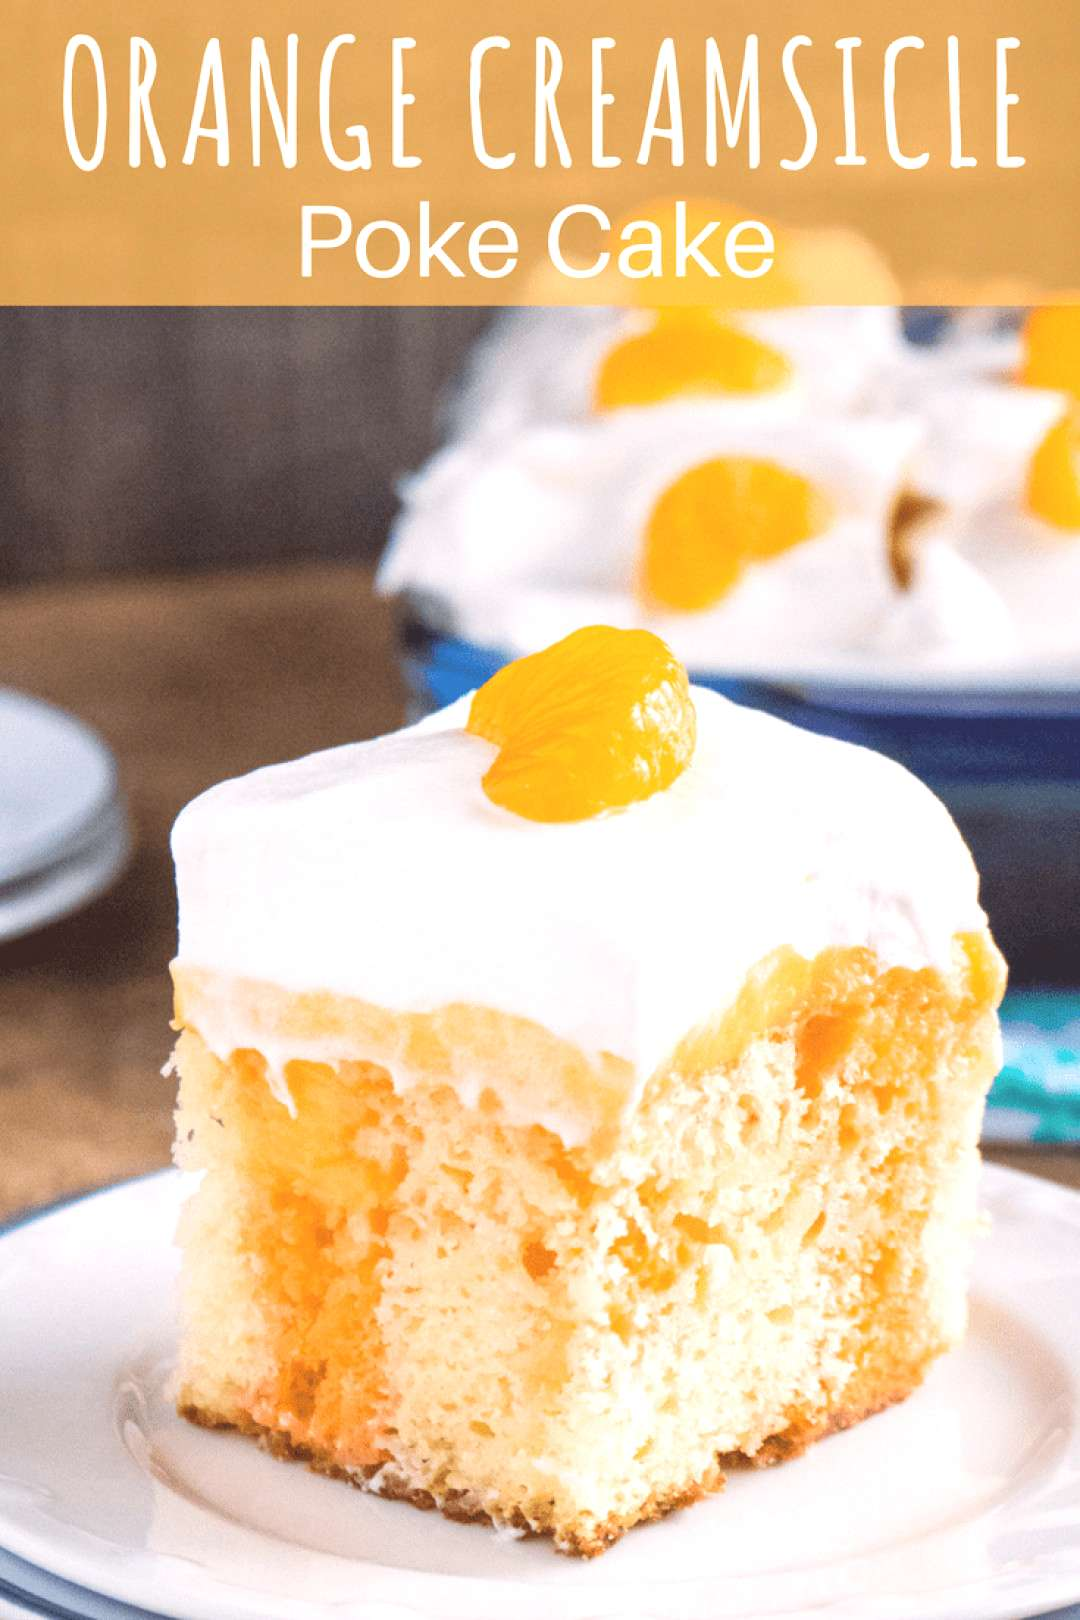 Whip up the perfect BBQ dessert with this Orange Creamsicle Poke Cake! Orange gelatin combines with